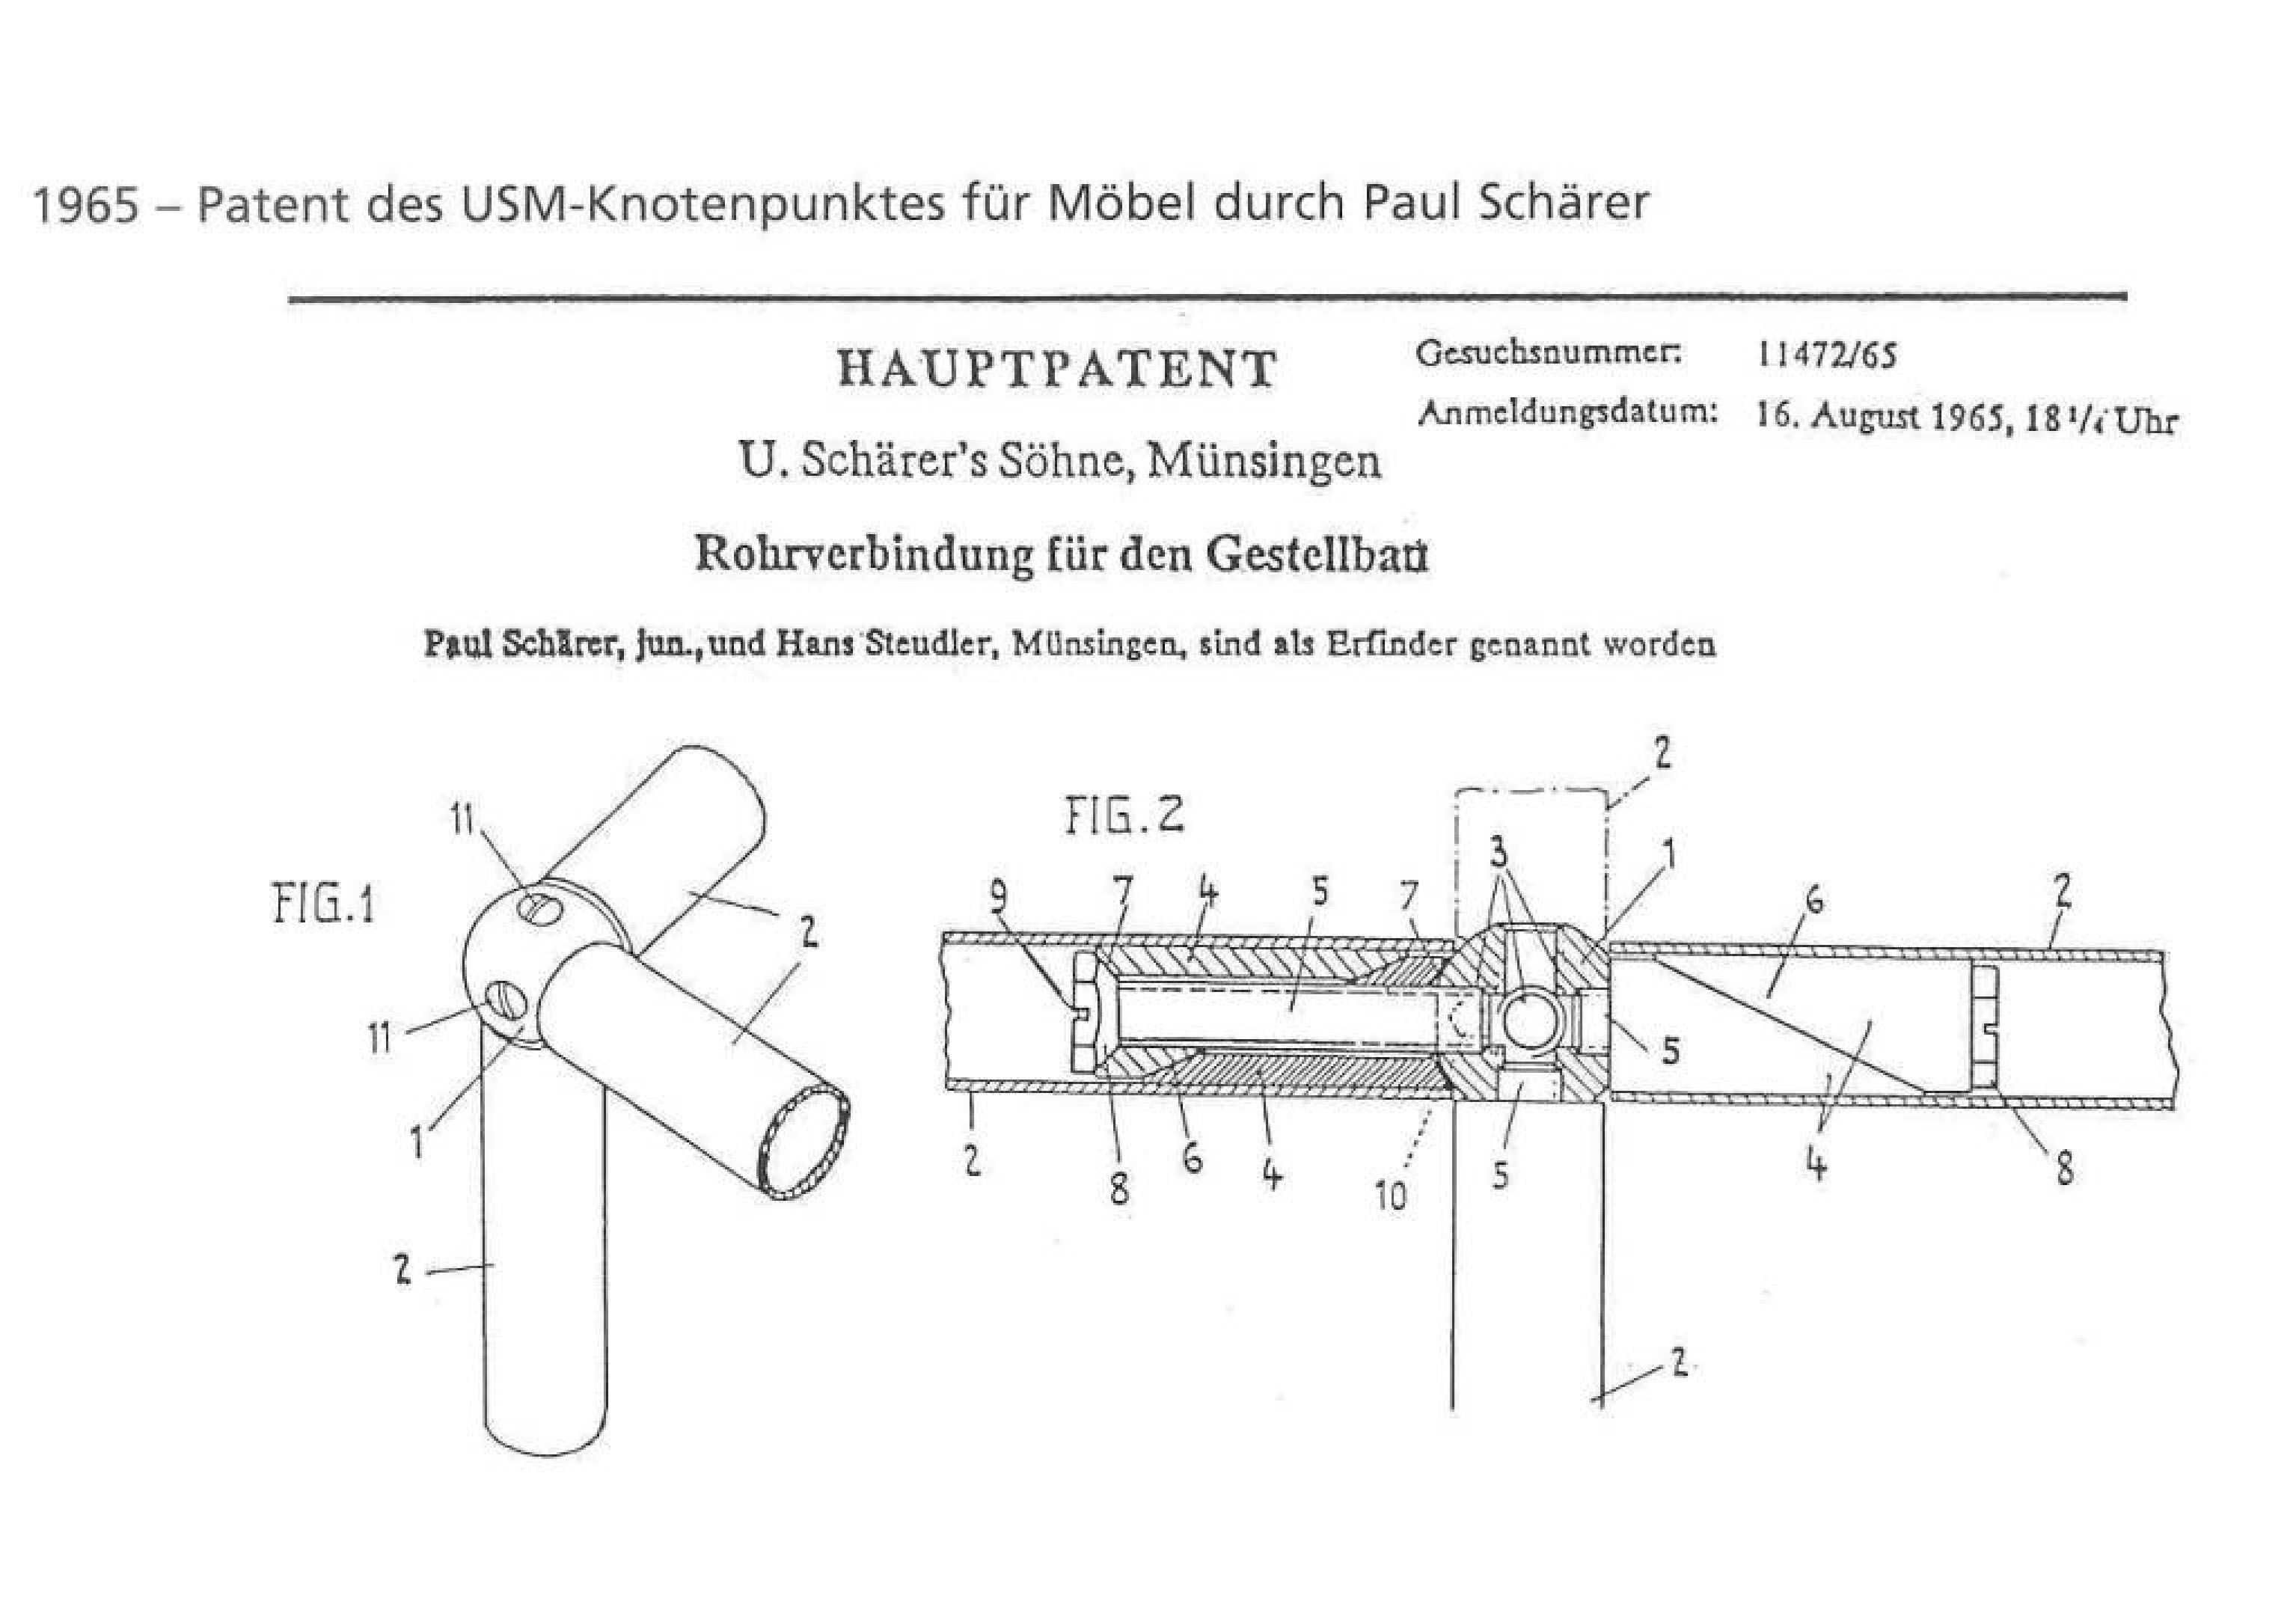 M&m Büromöbel Express Gmbh Berlin The Patent For The Core Of Usm Modular Furniture Haller In 1965 Usm